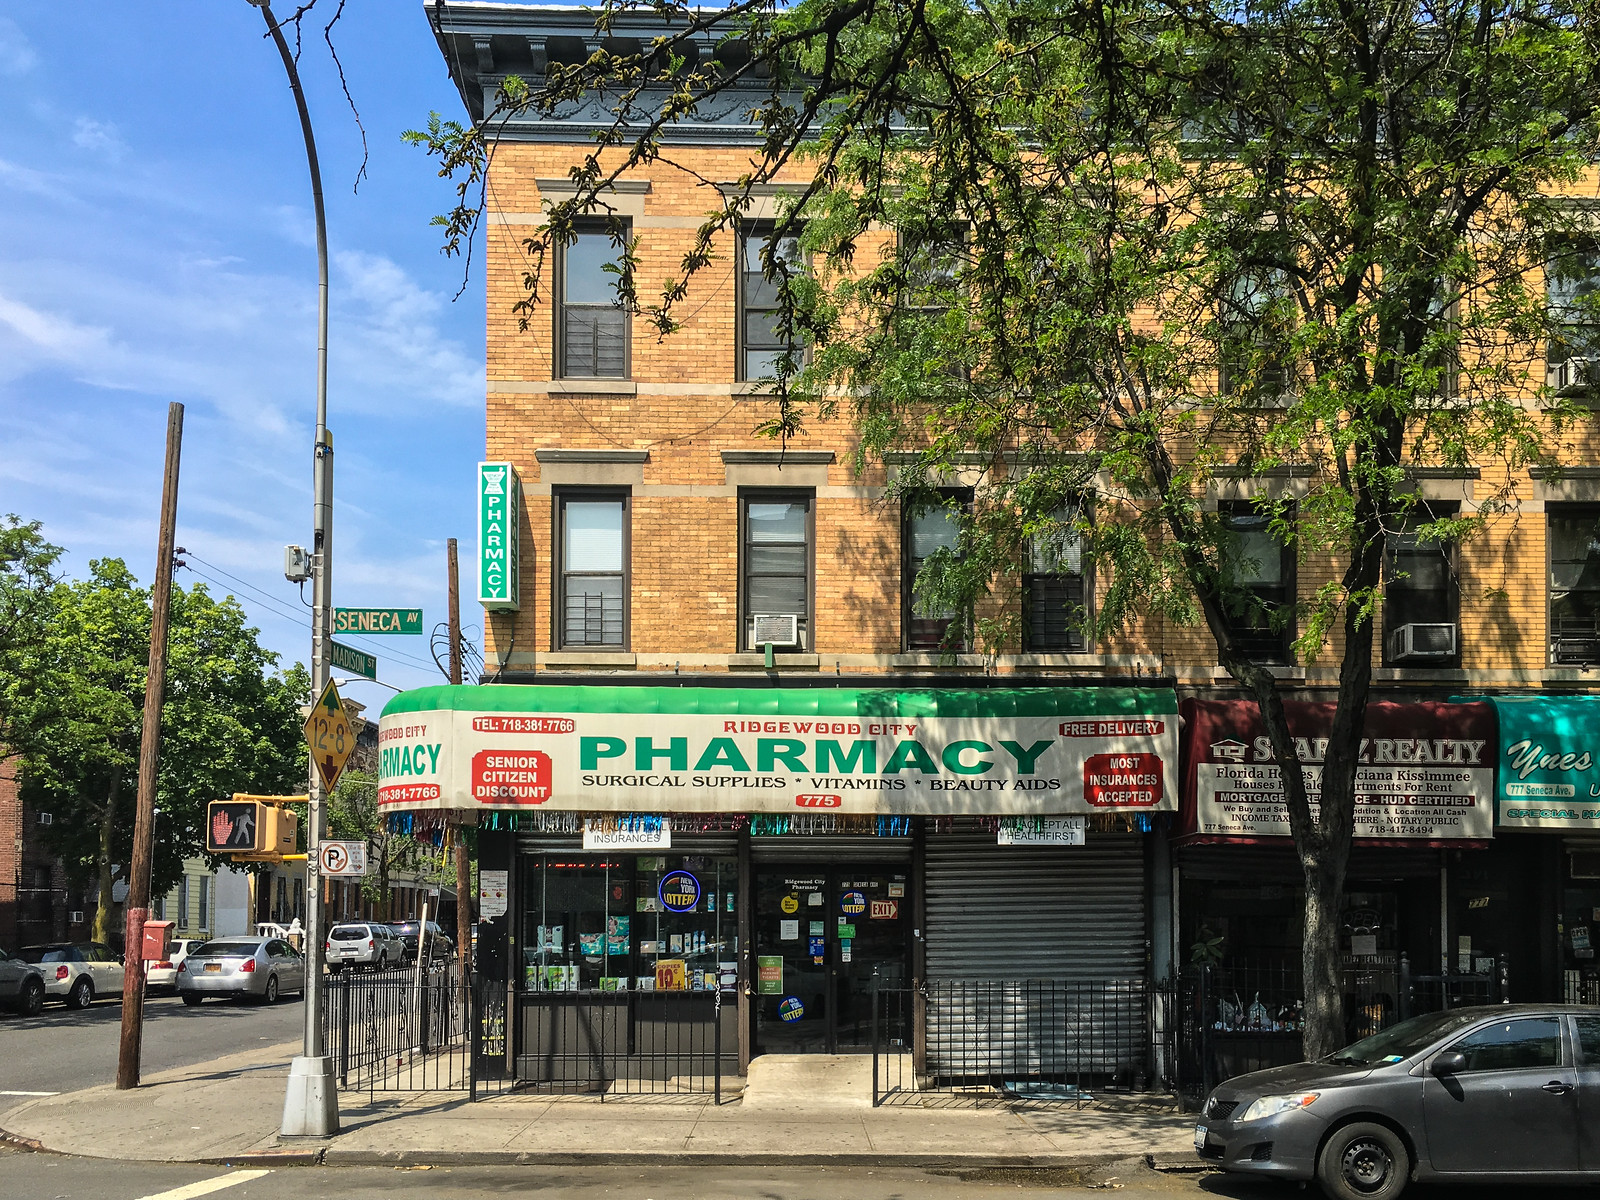 Ridgewood City Pharmacy